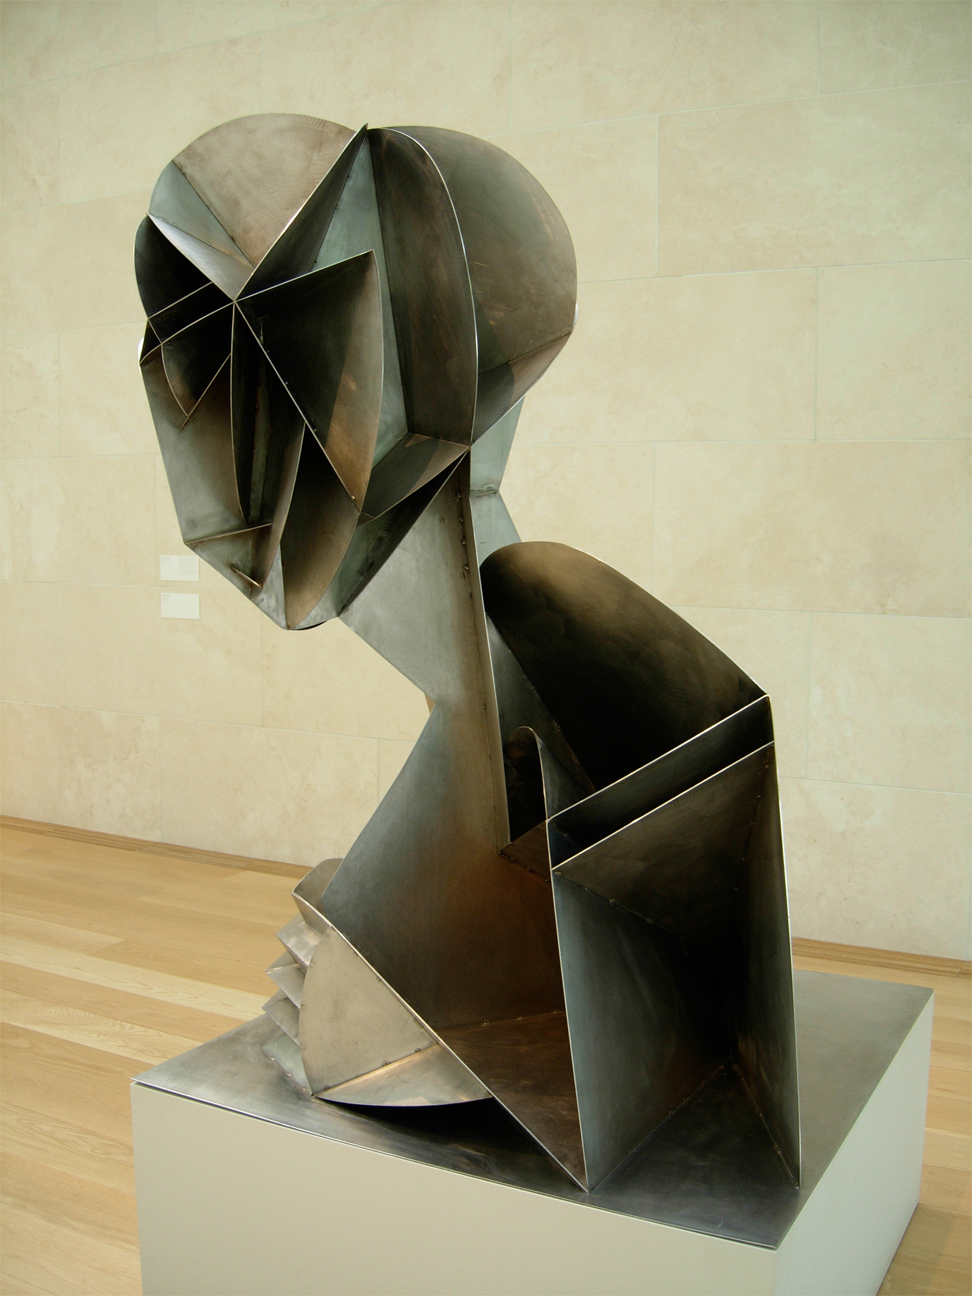 naum gabo Naum gabo at the bauhaus what is kinetic art what does kinetic art mean kinetic art meaning, definition & explanation - duration: 3:02 the audiopedia 708 views.